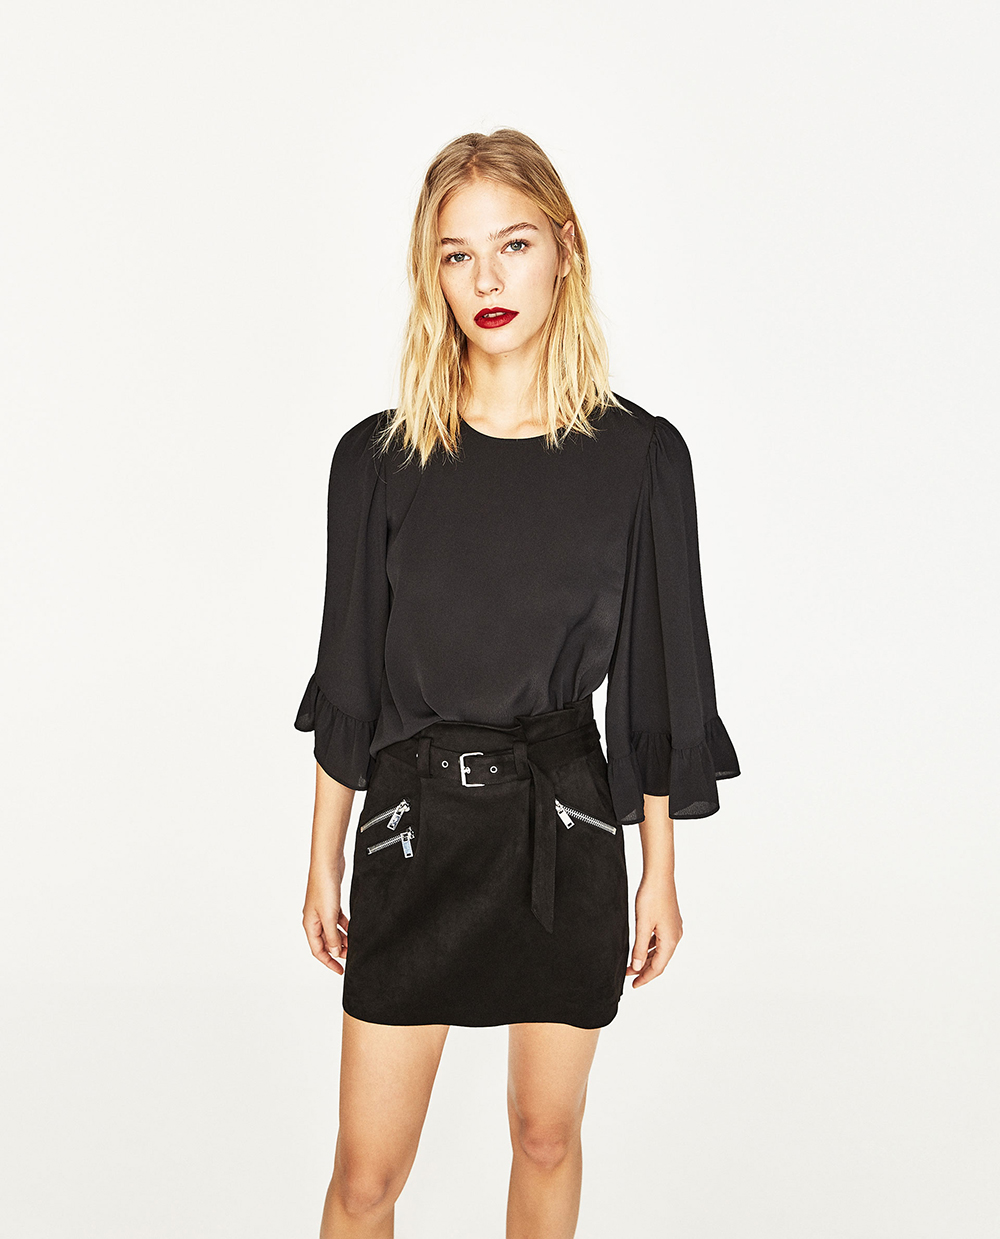 Zara Top with Kimono Sleeves - Statement Sleeves